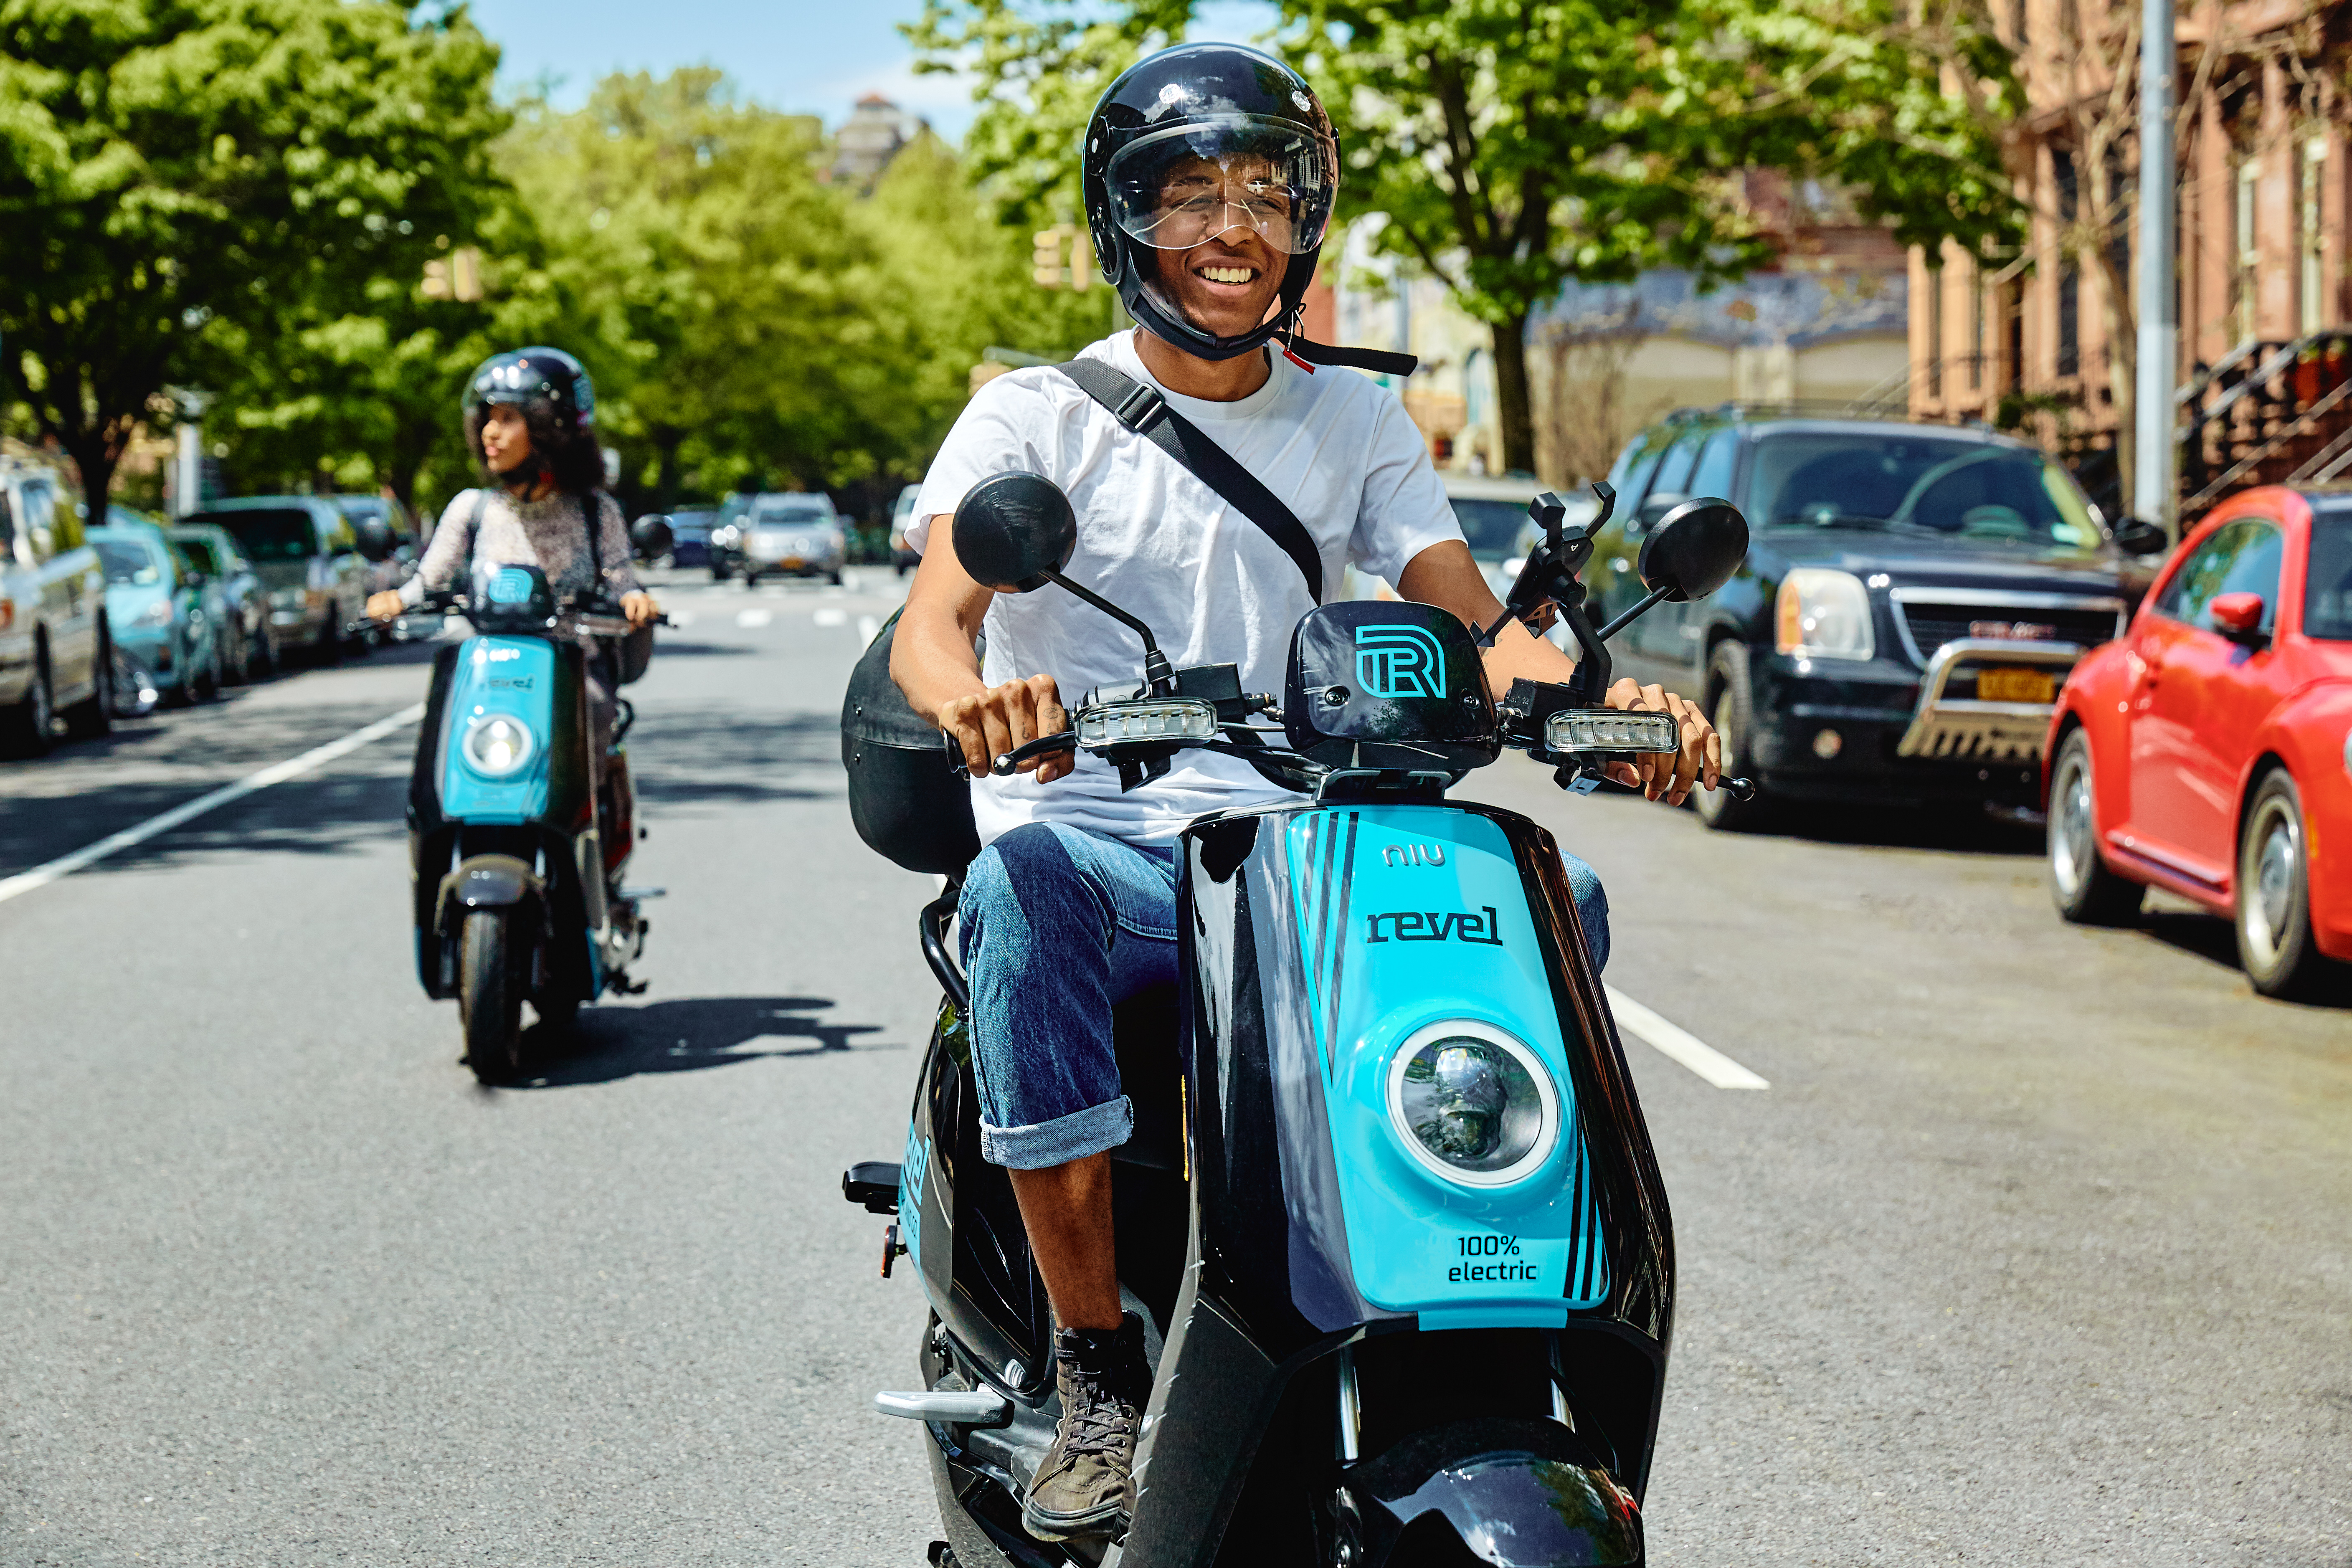 After a successful pilot program, city's first shared e-moped